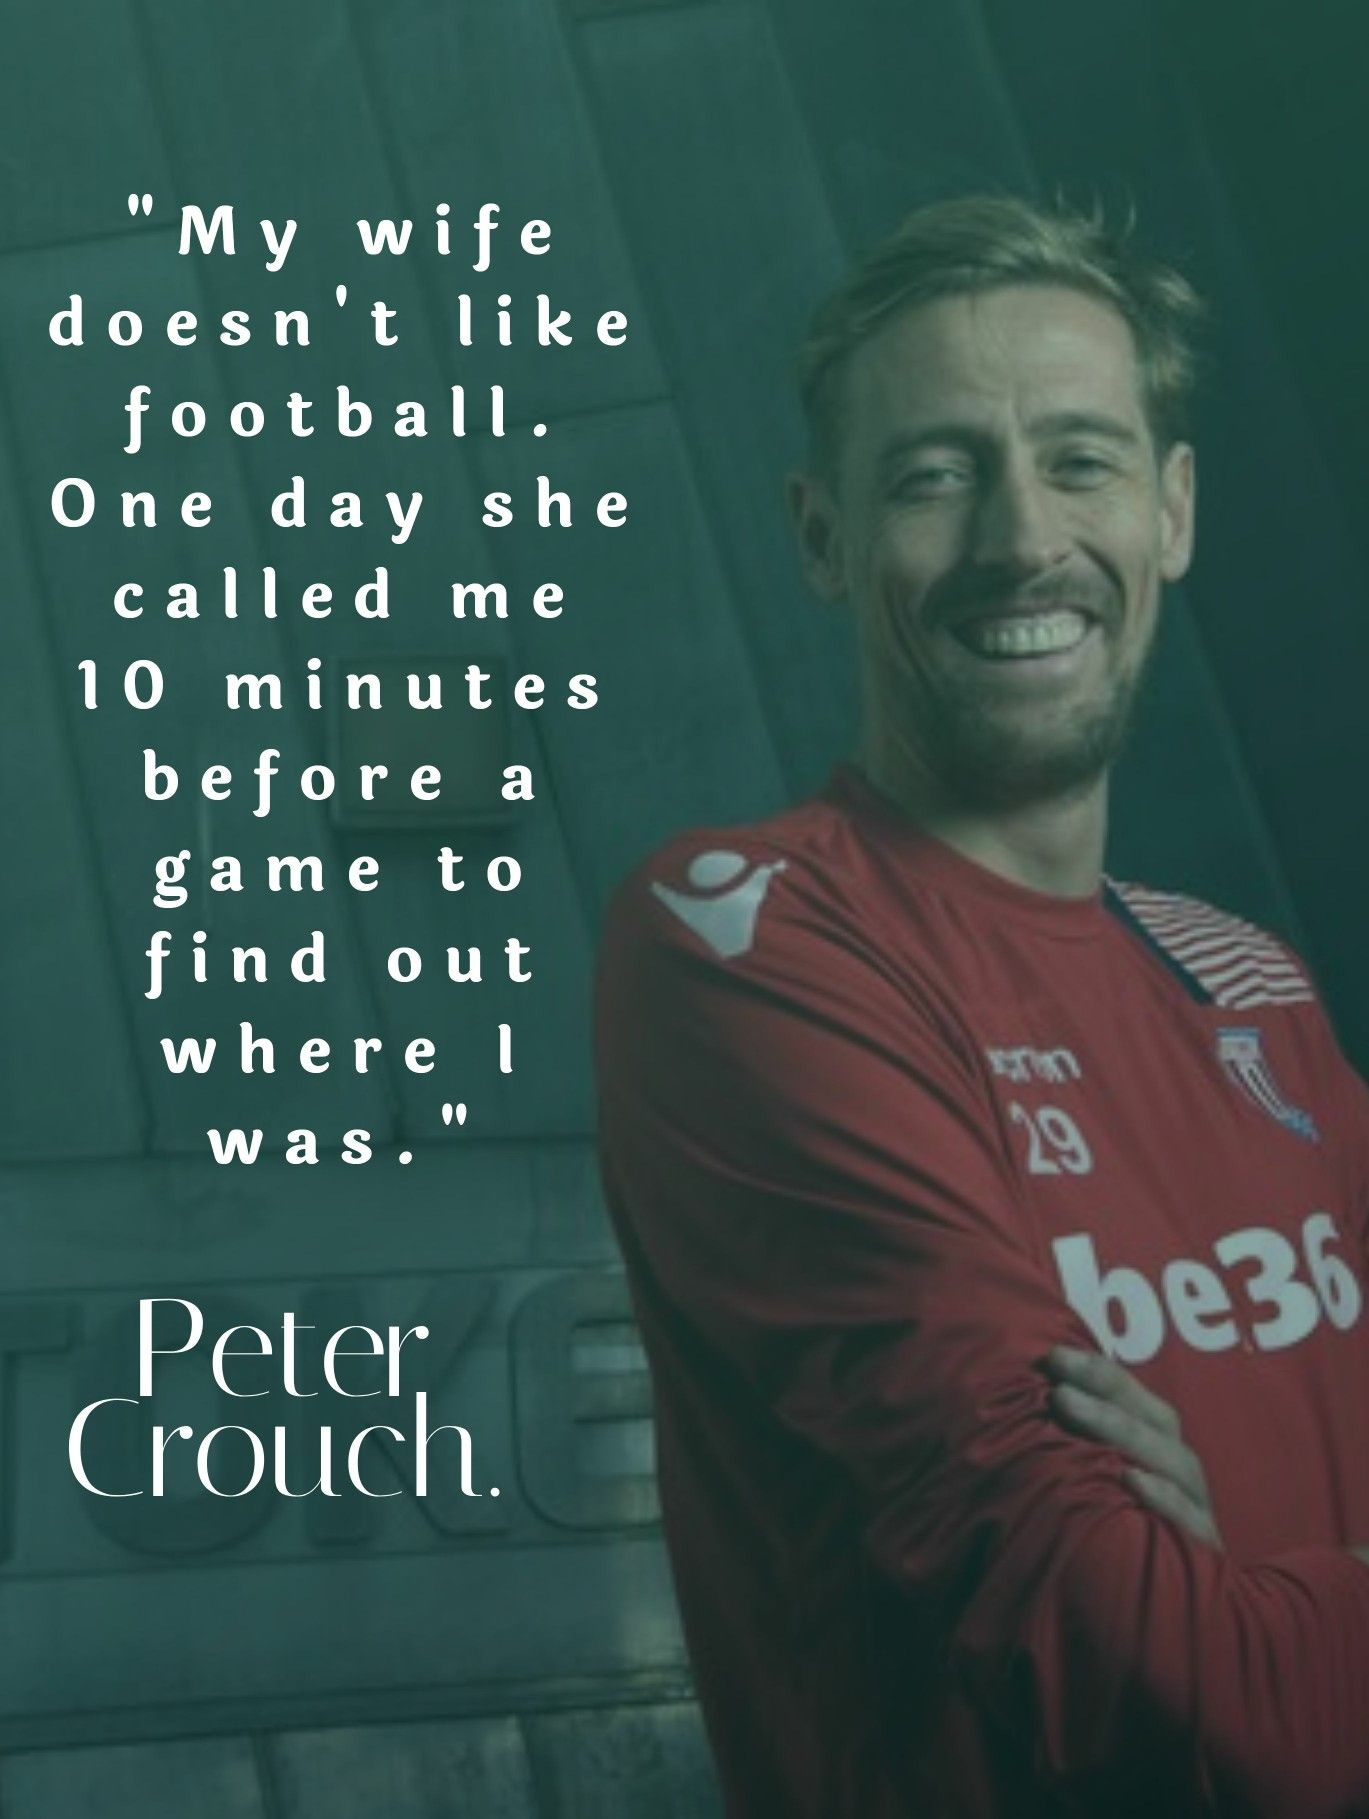 Peter Crouch Quotes Soccer Quotes Funny Football Quotes Funny Soccer Funny